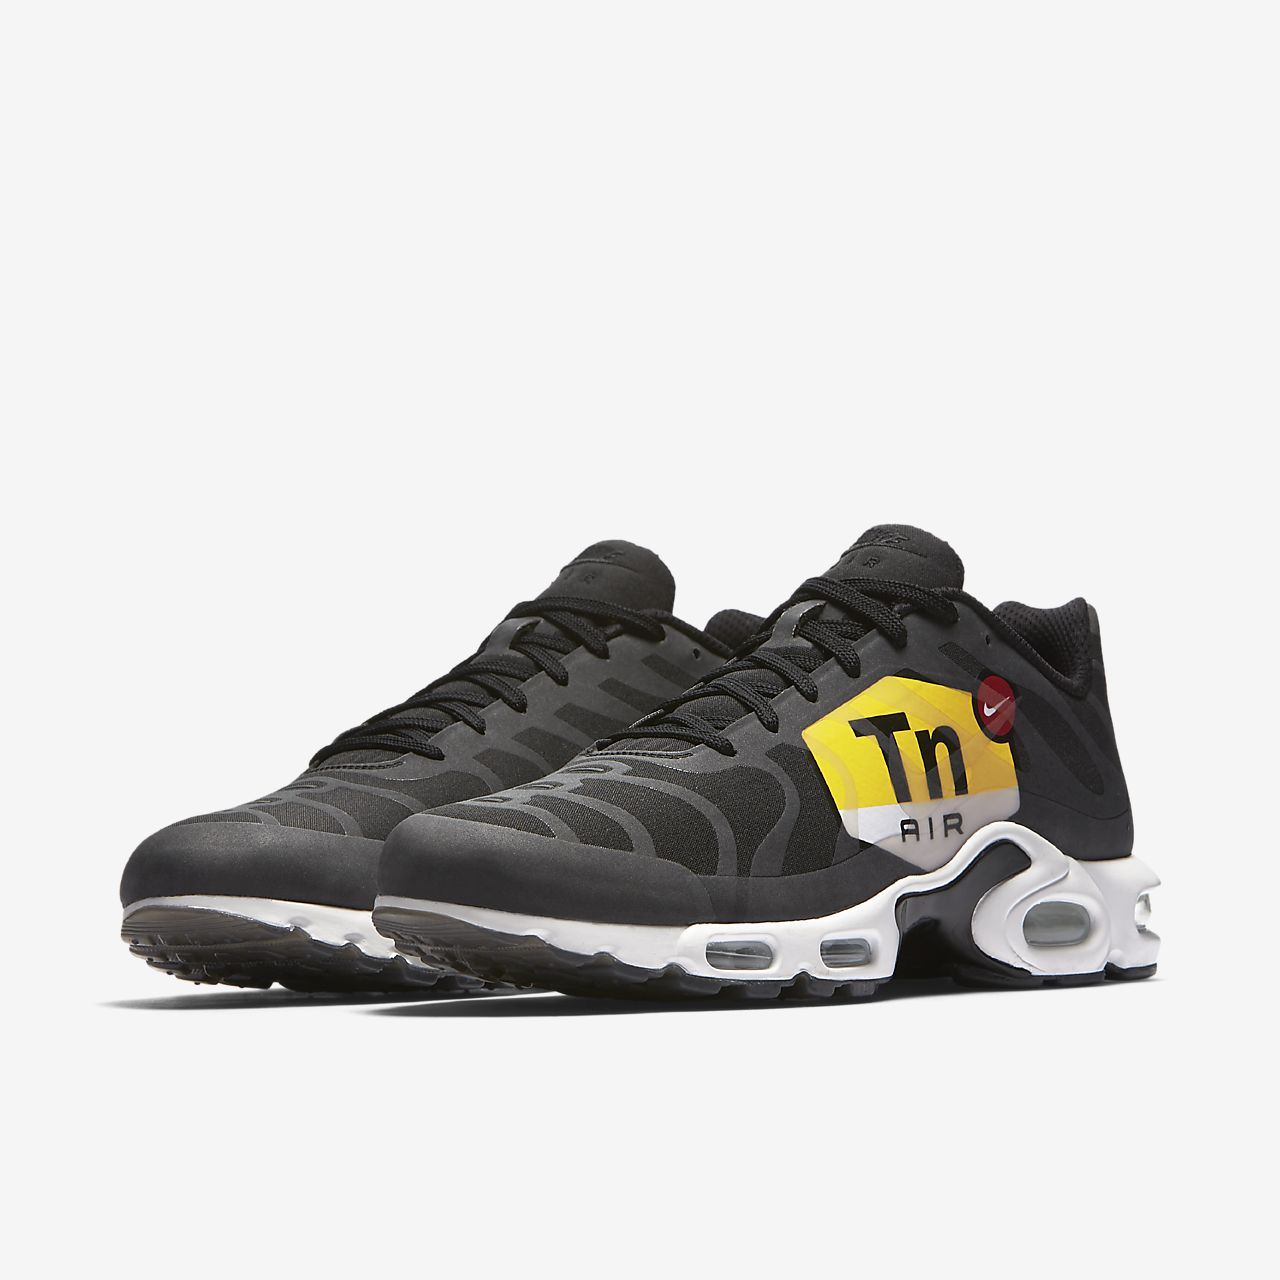 Nike Air Max Plus NS GPX sneakers many kinds of for sale h4wQY7YPK